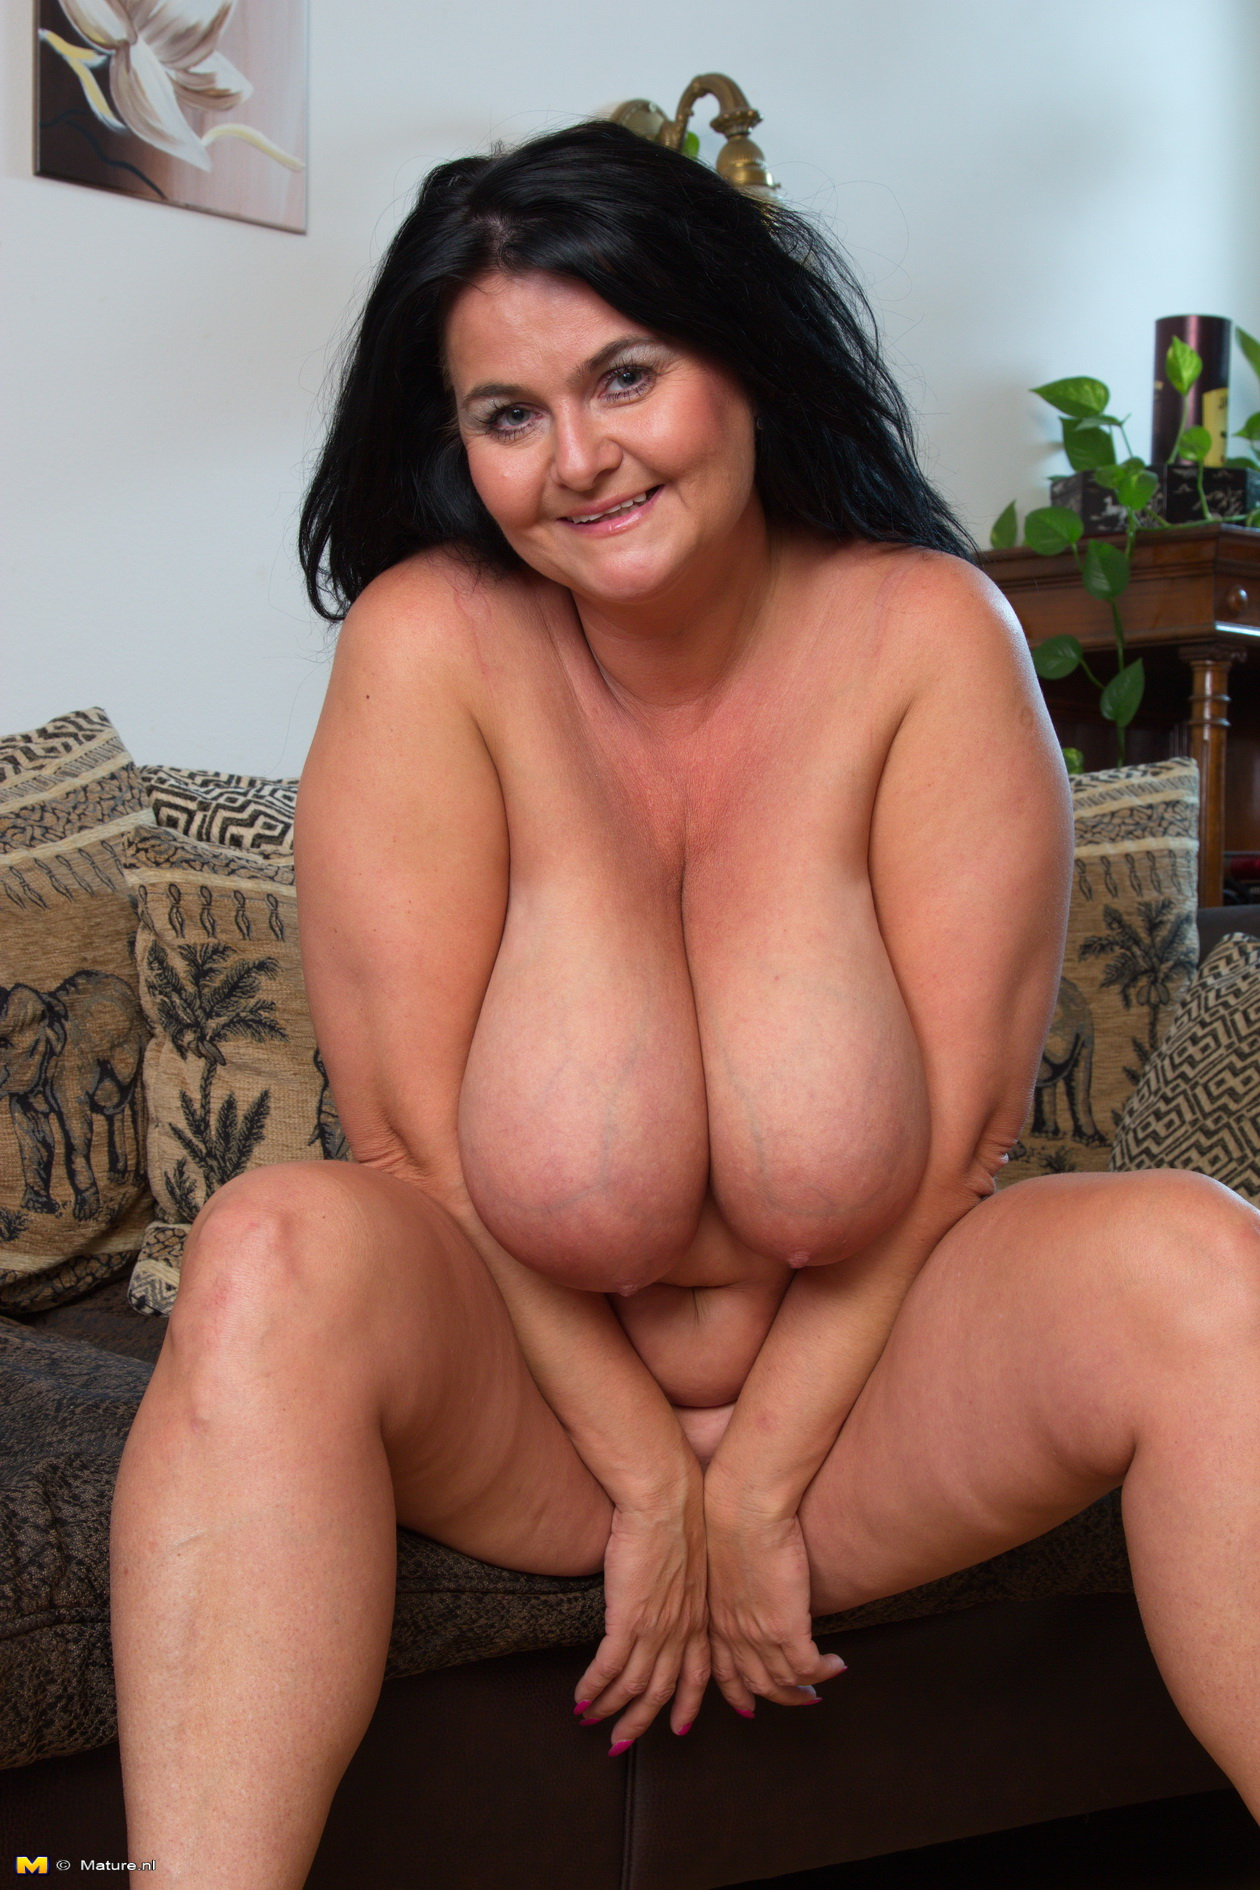 Mature amature housewife pics